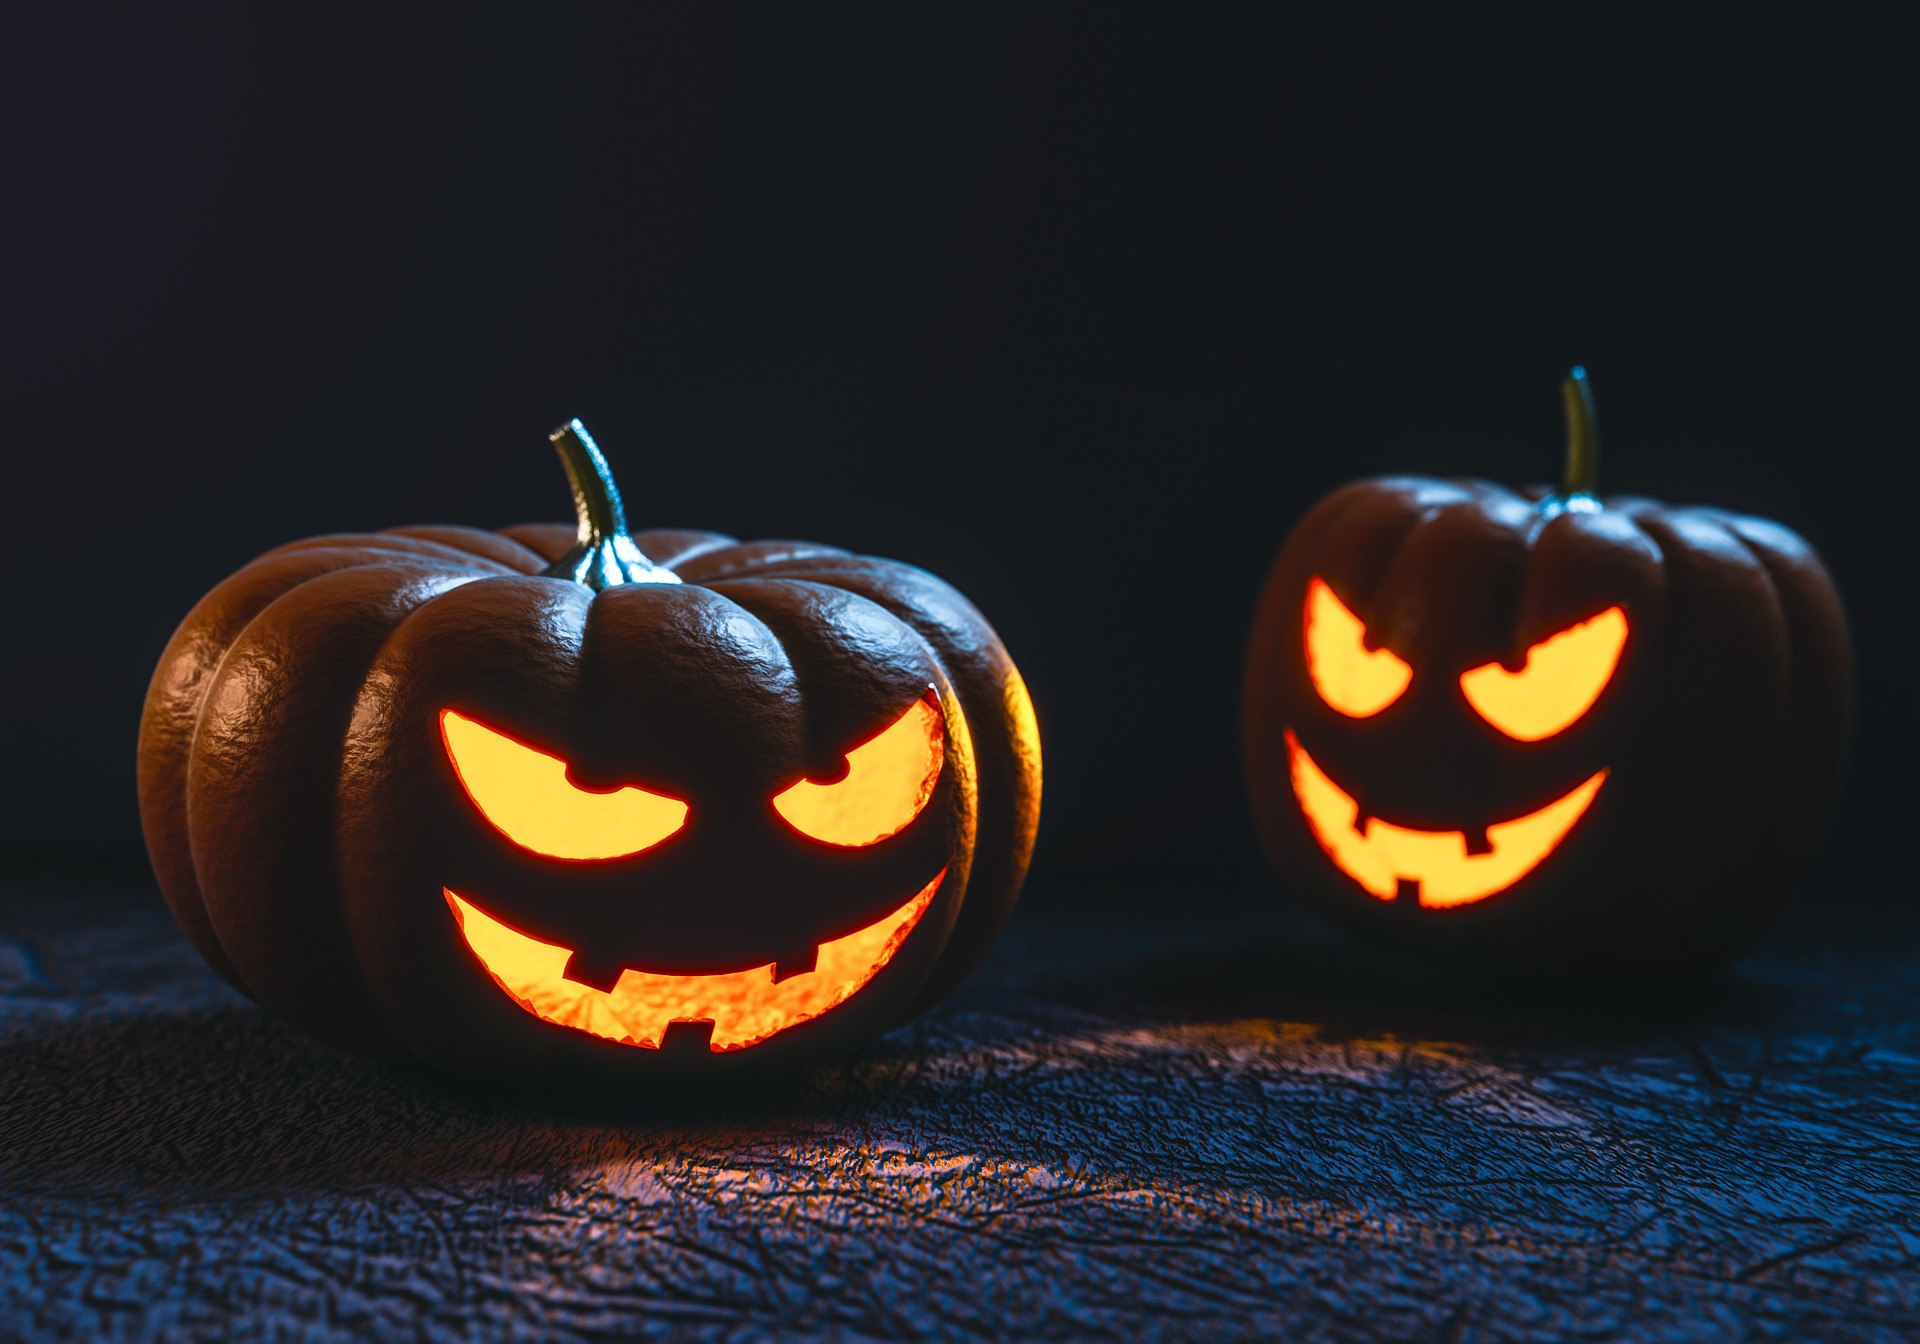 A Spooktacular Halloween in Conwy County